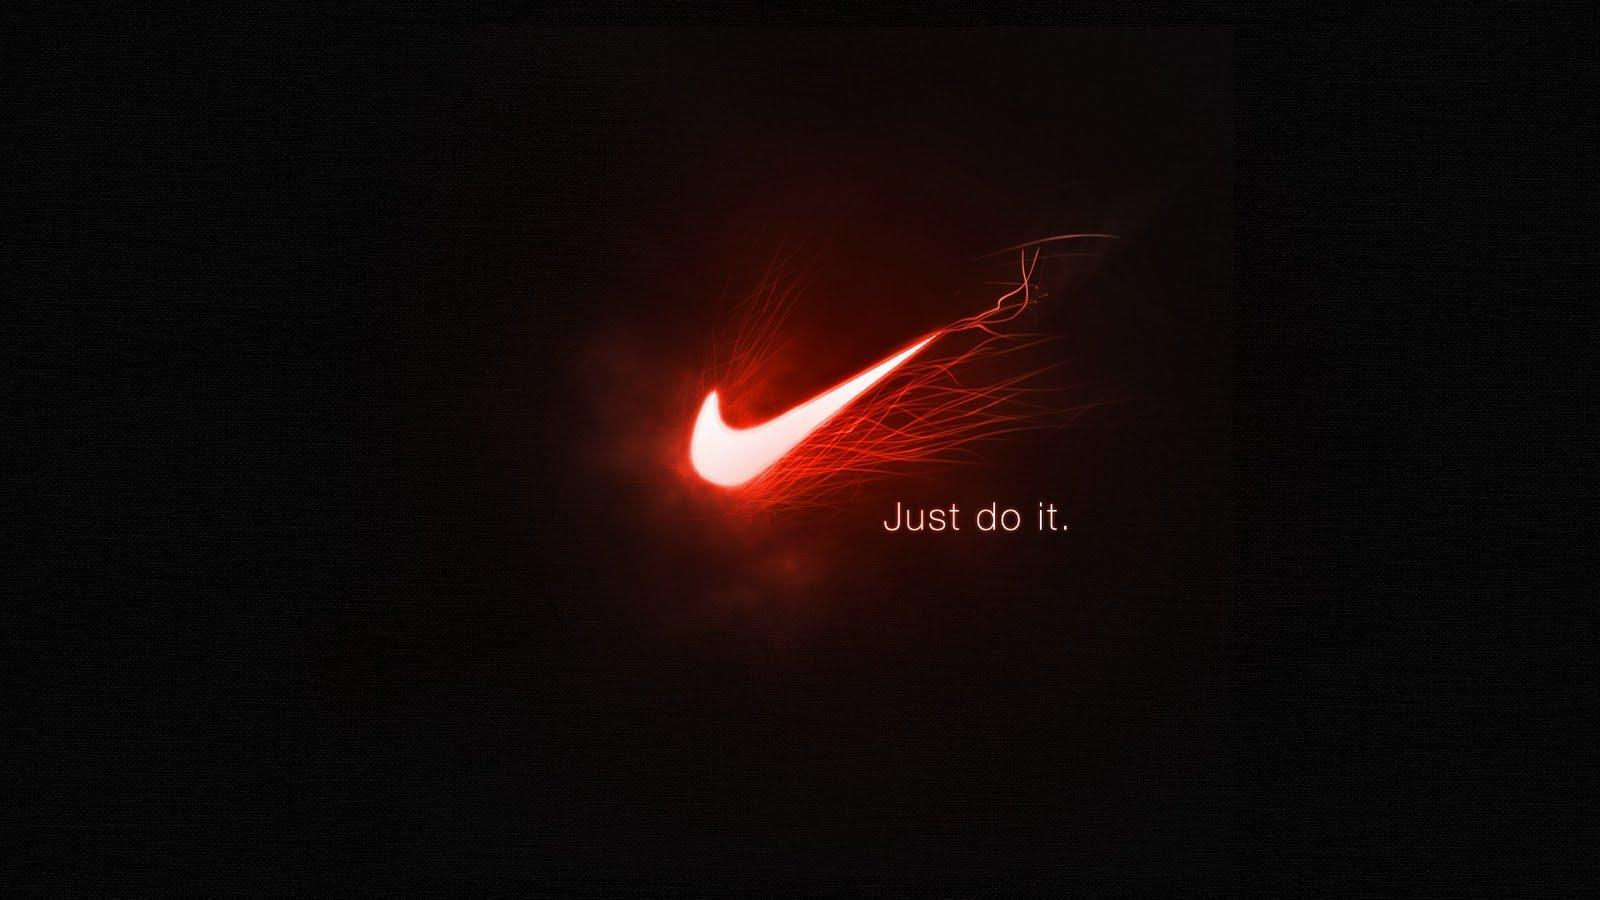 Nike Logo Wallpapers HD 2015 - Wallpaper Cave